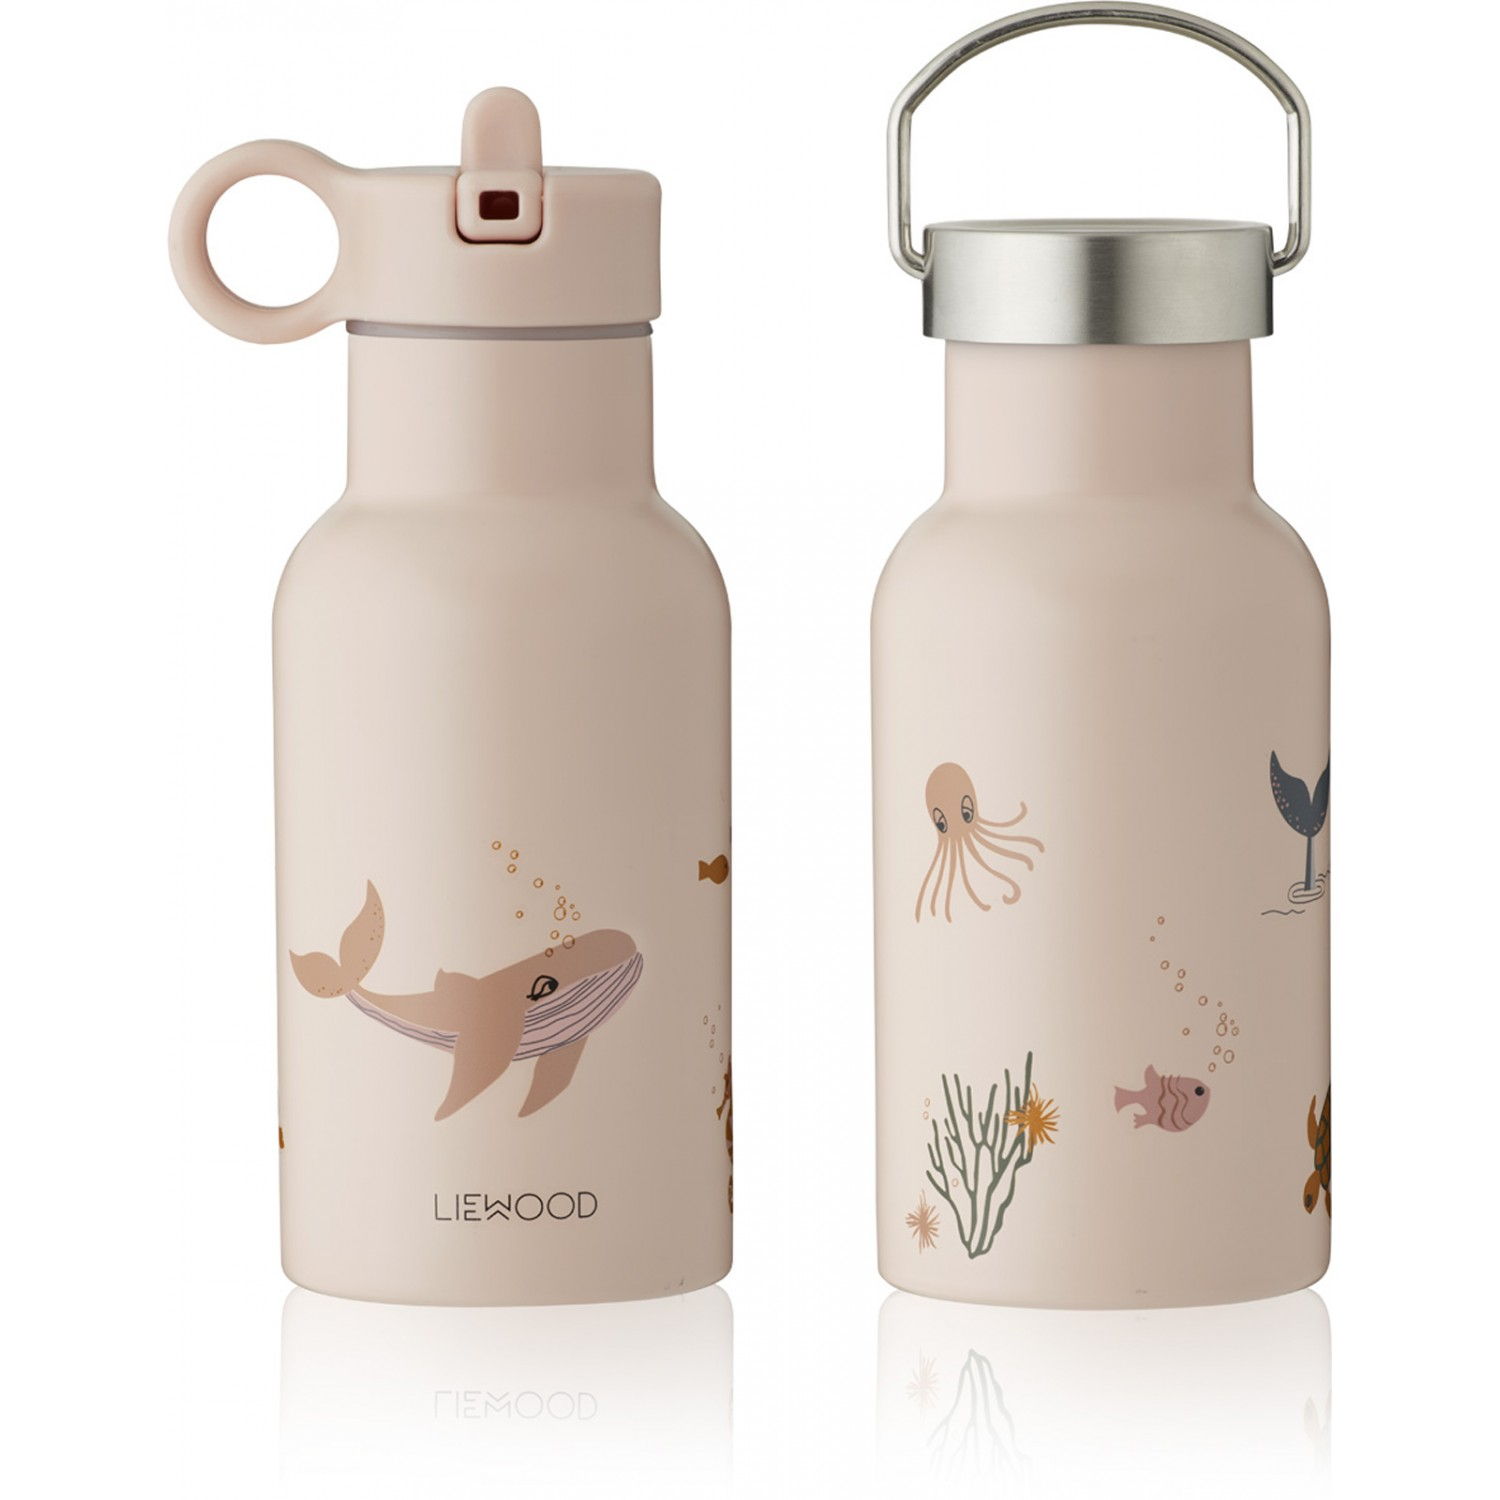 Anker Water Bottle - 350 ml - Sea creature rose mix